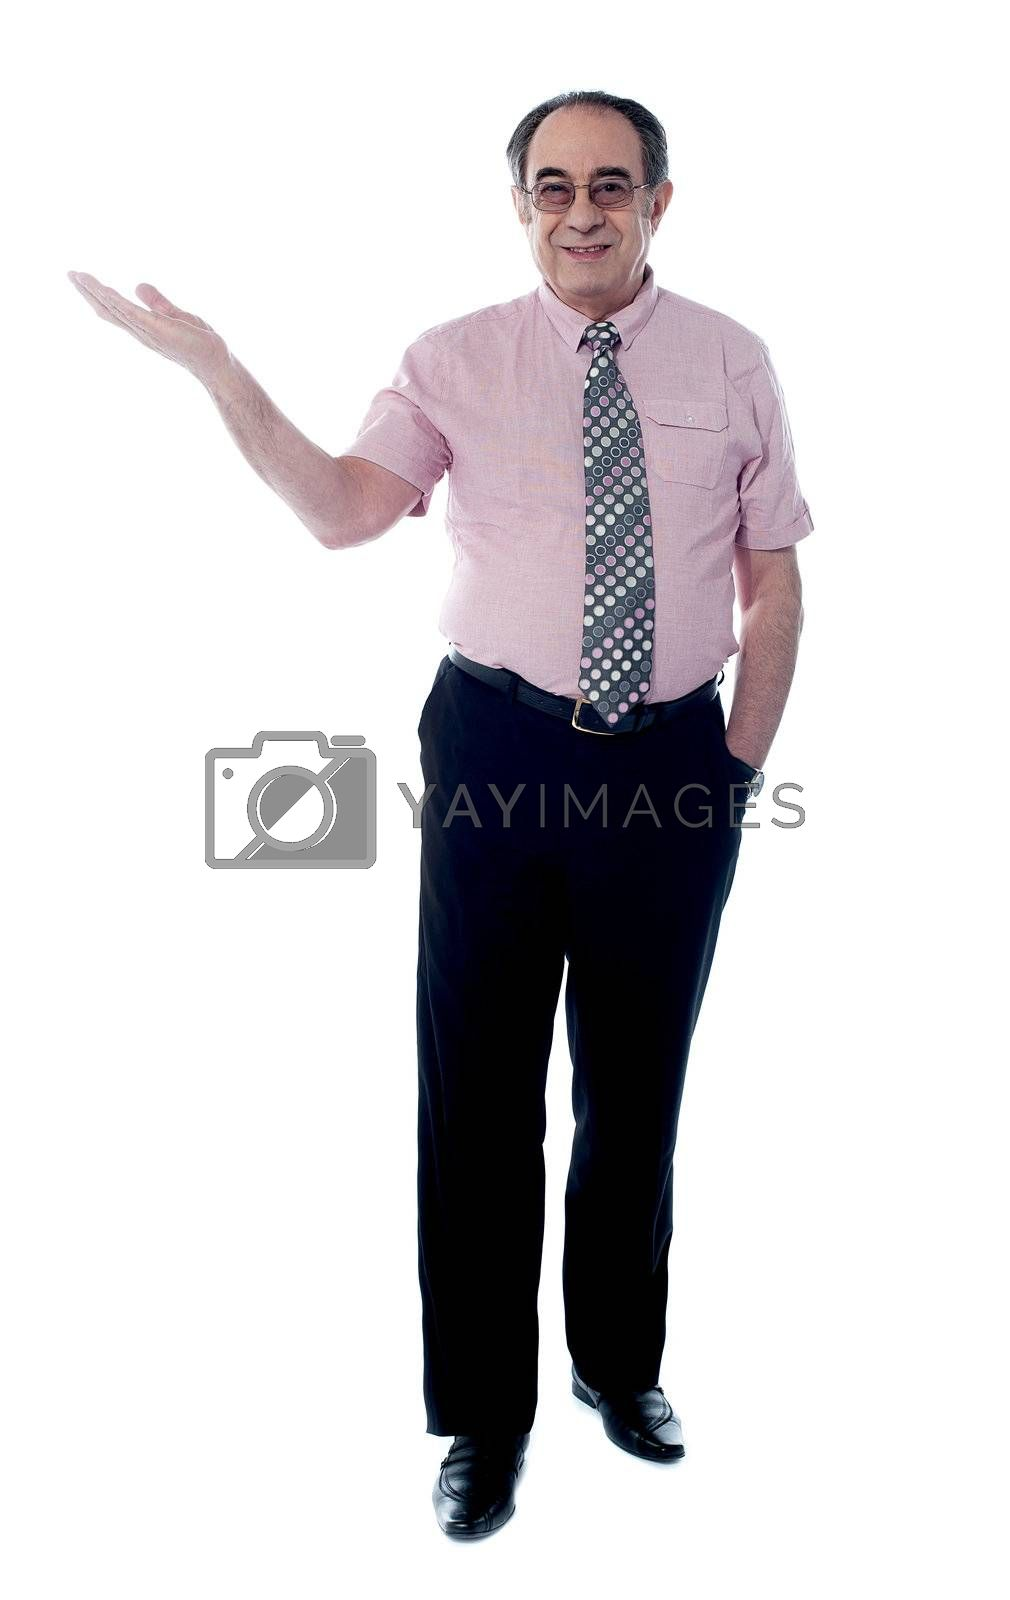 Senior boss posing with an open palm awith the other hand in pocket, stylish